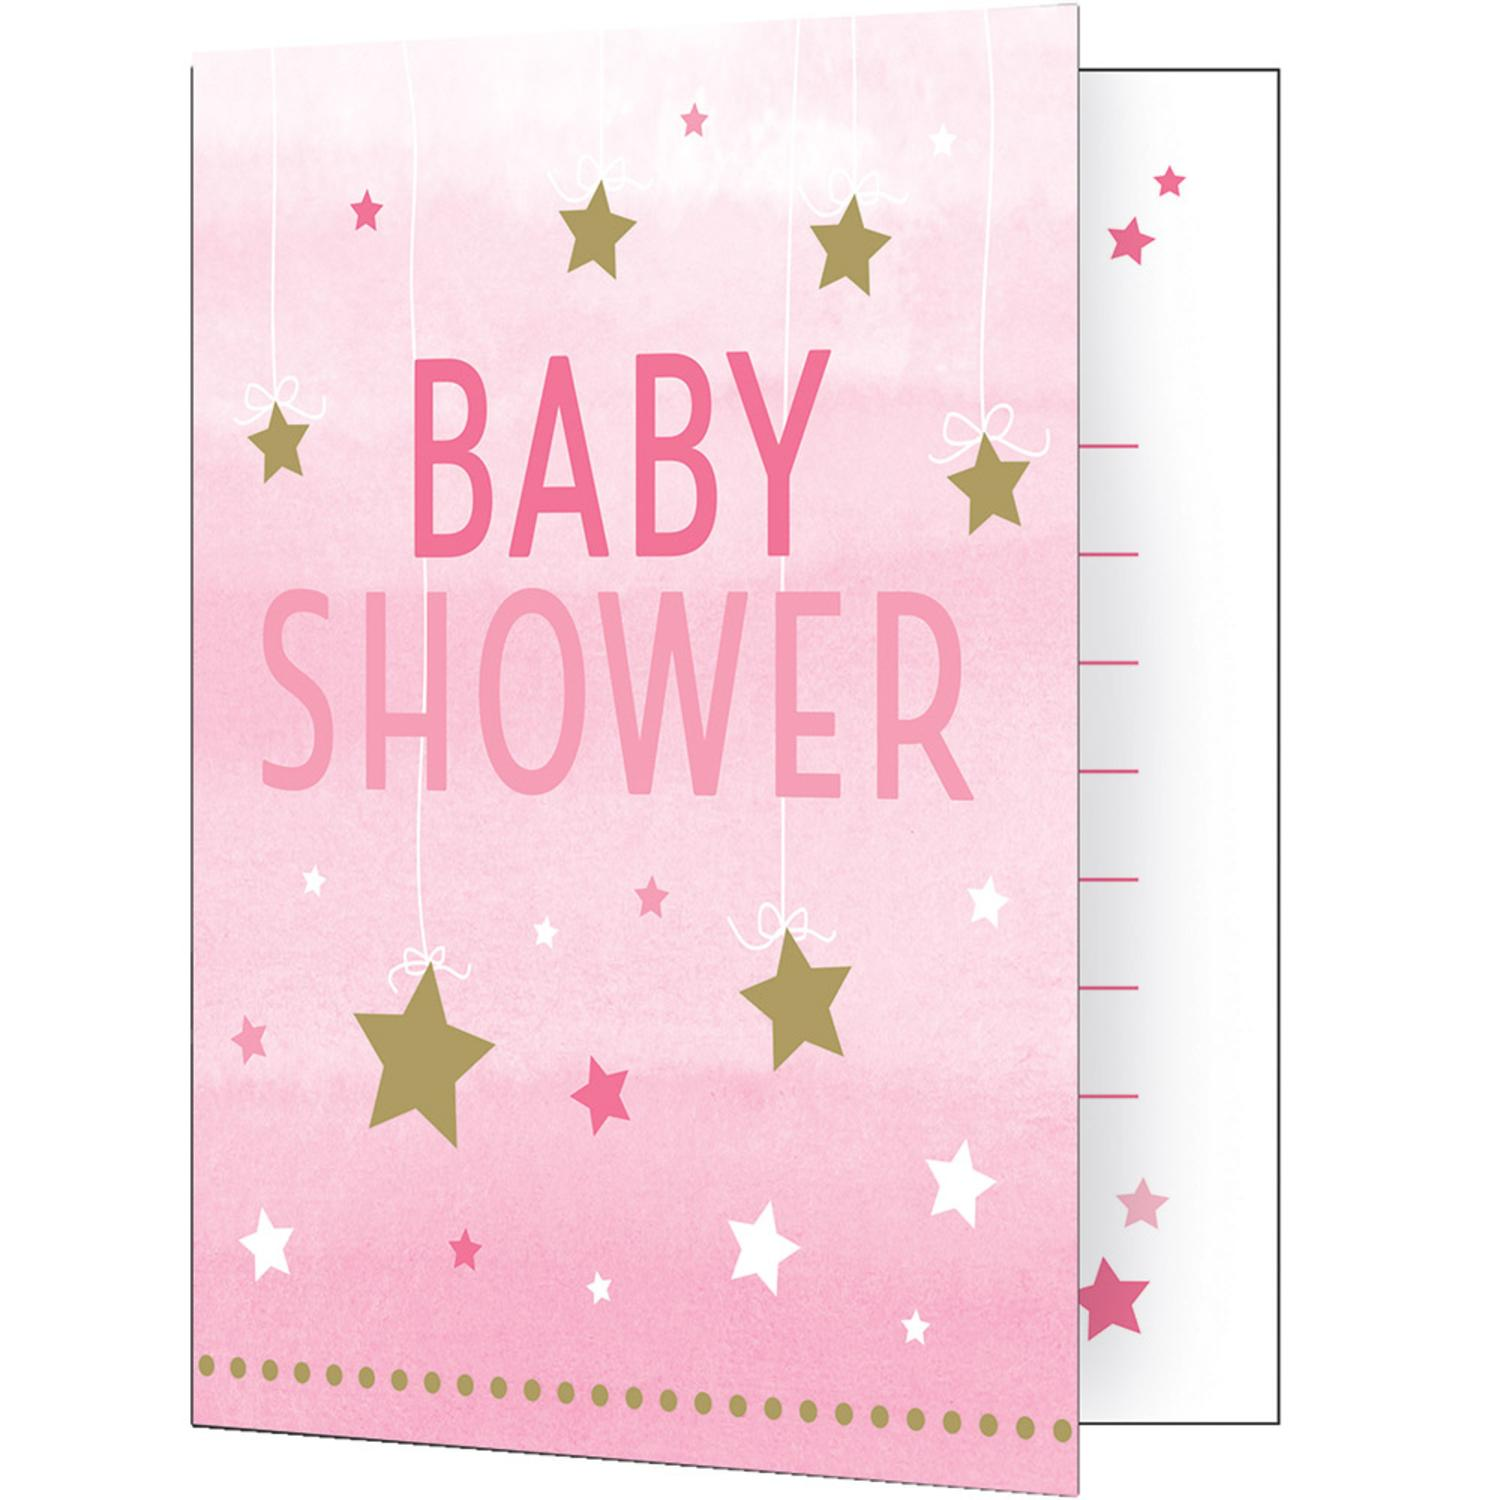 Club Pack of 48 Pink and White Baby Shower Premium Invitation Foldovers 7.5""